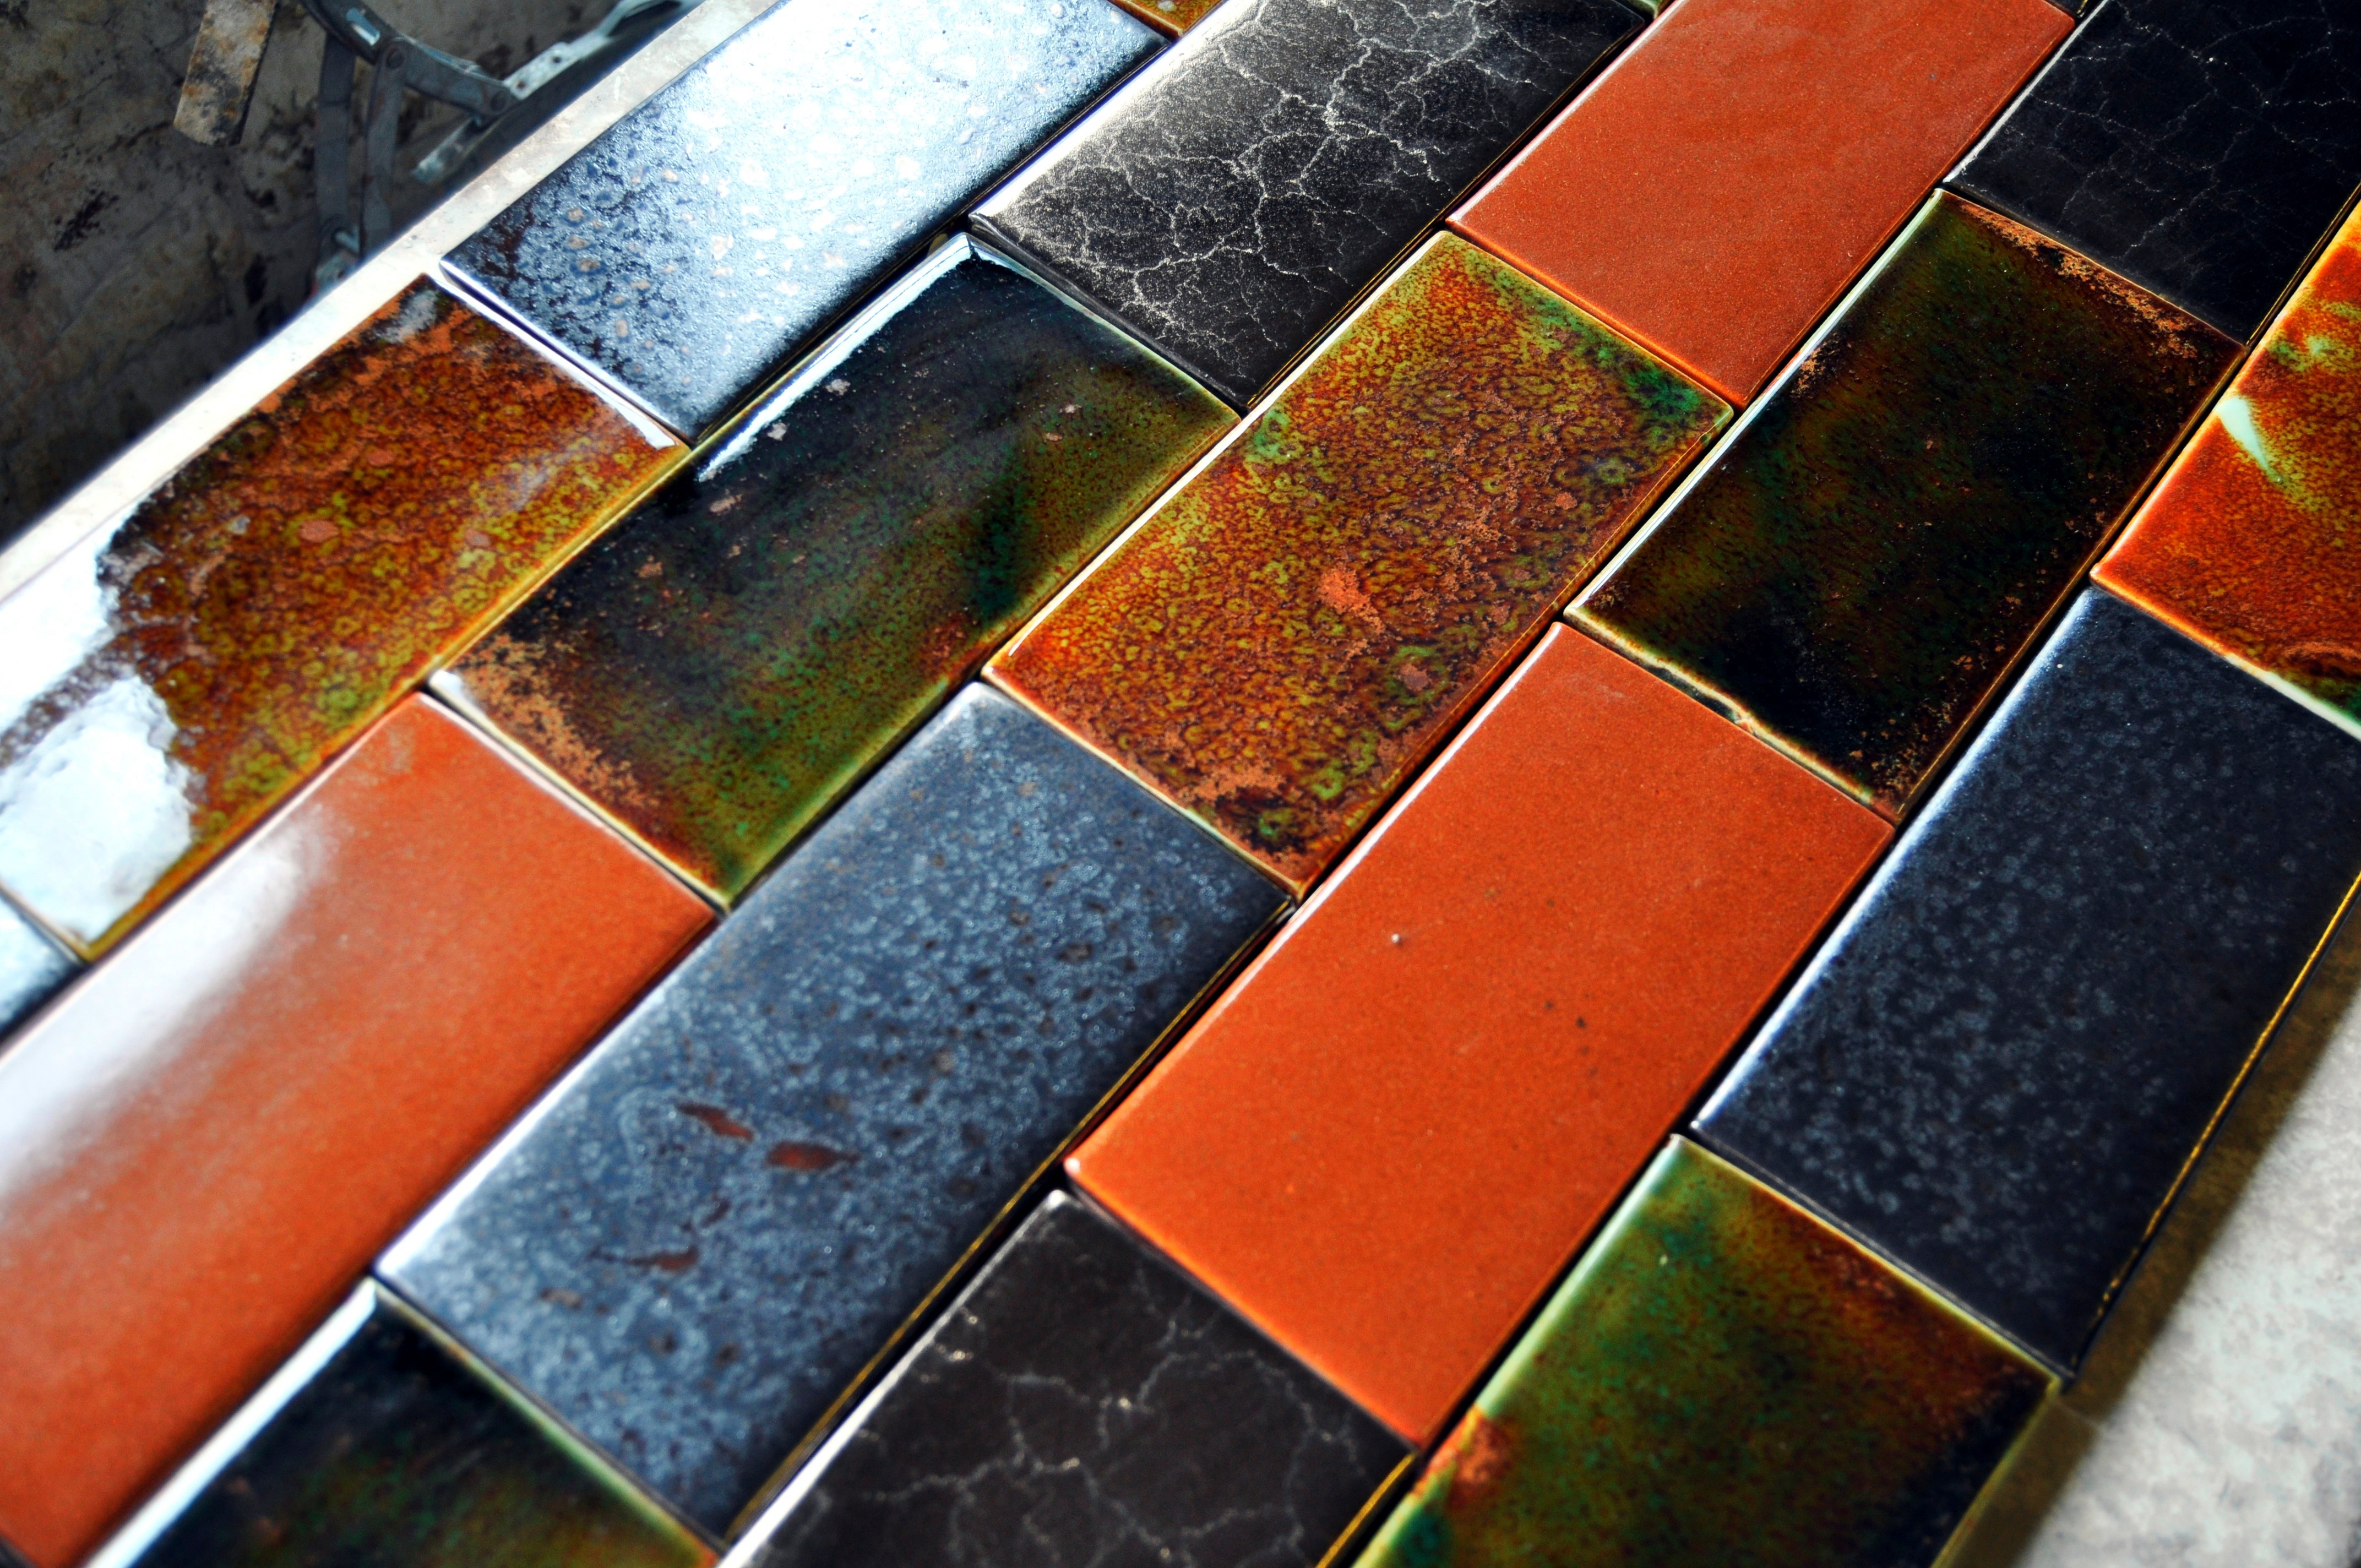 Ceramic tile glazing columbialabelsfo hand glazed tiles floor and decorations images floor and dailygadgetfo Images